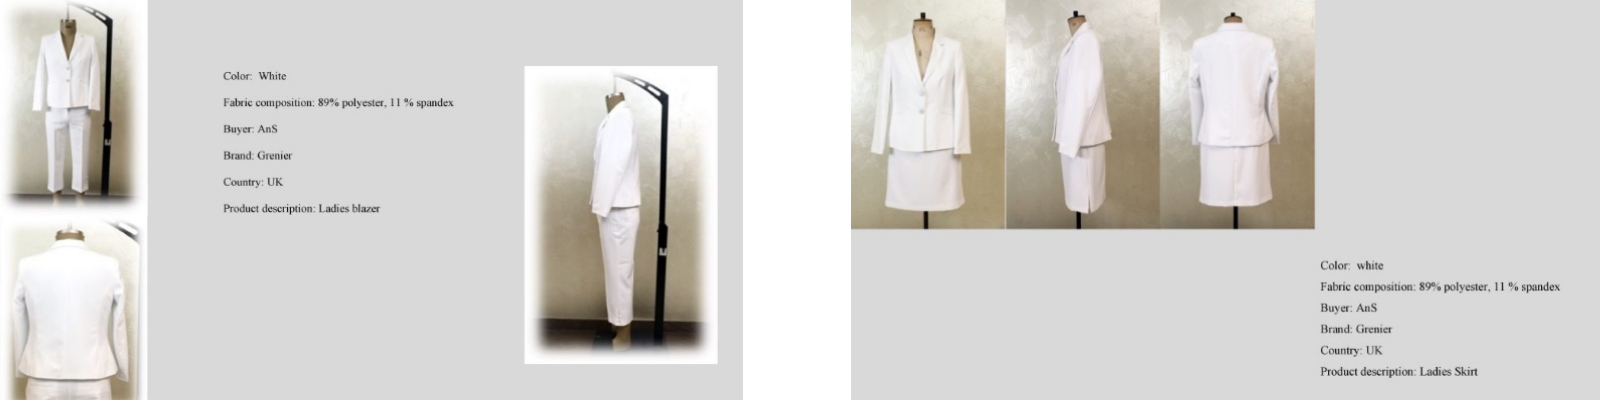 LGFG women's 2-piece suits for wholesale distribution